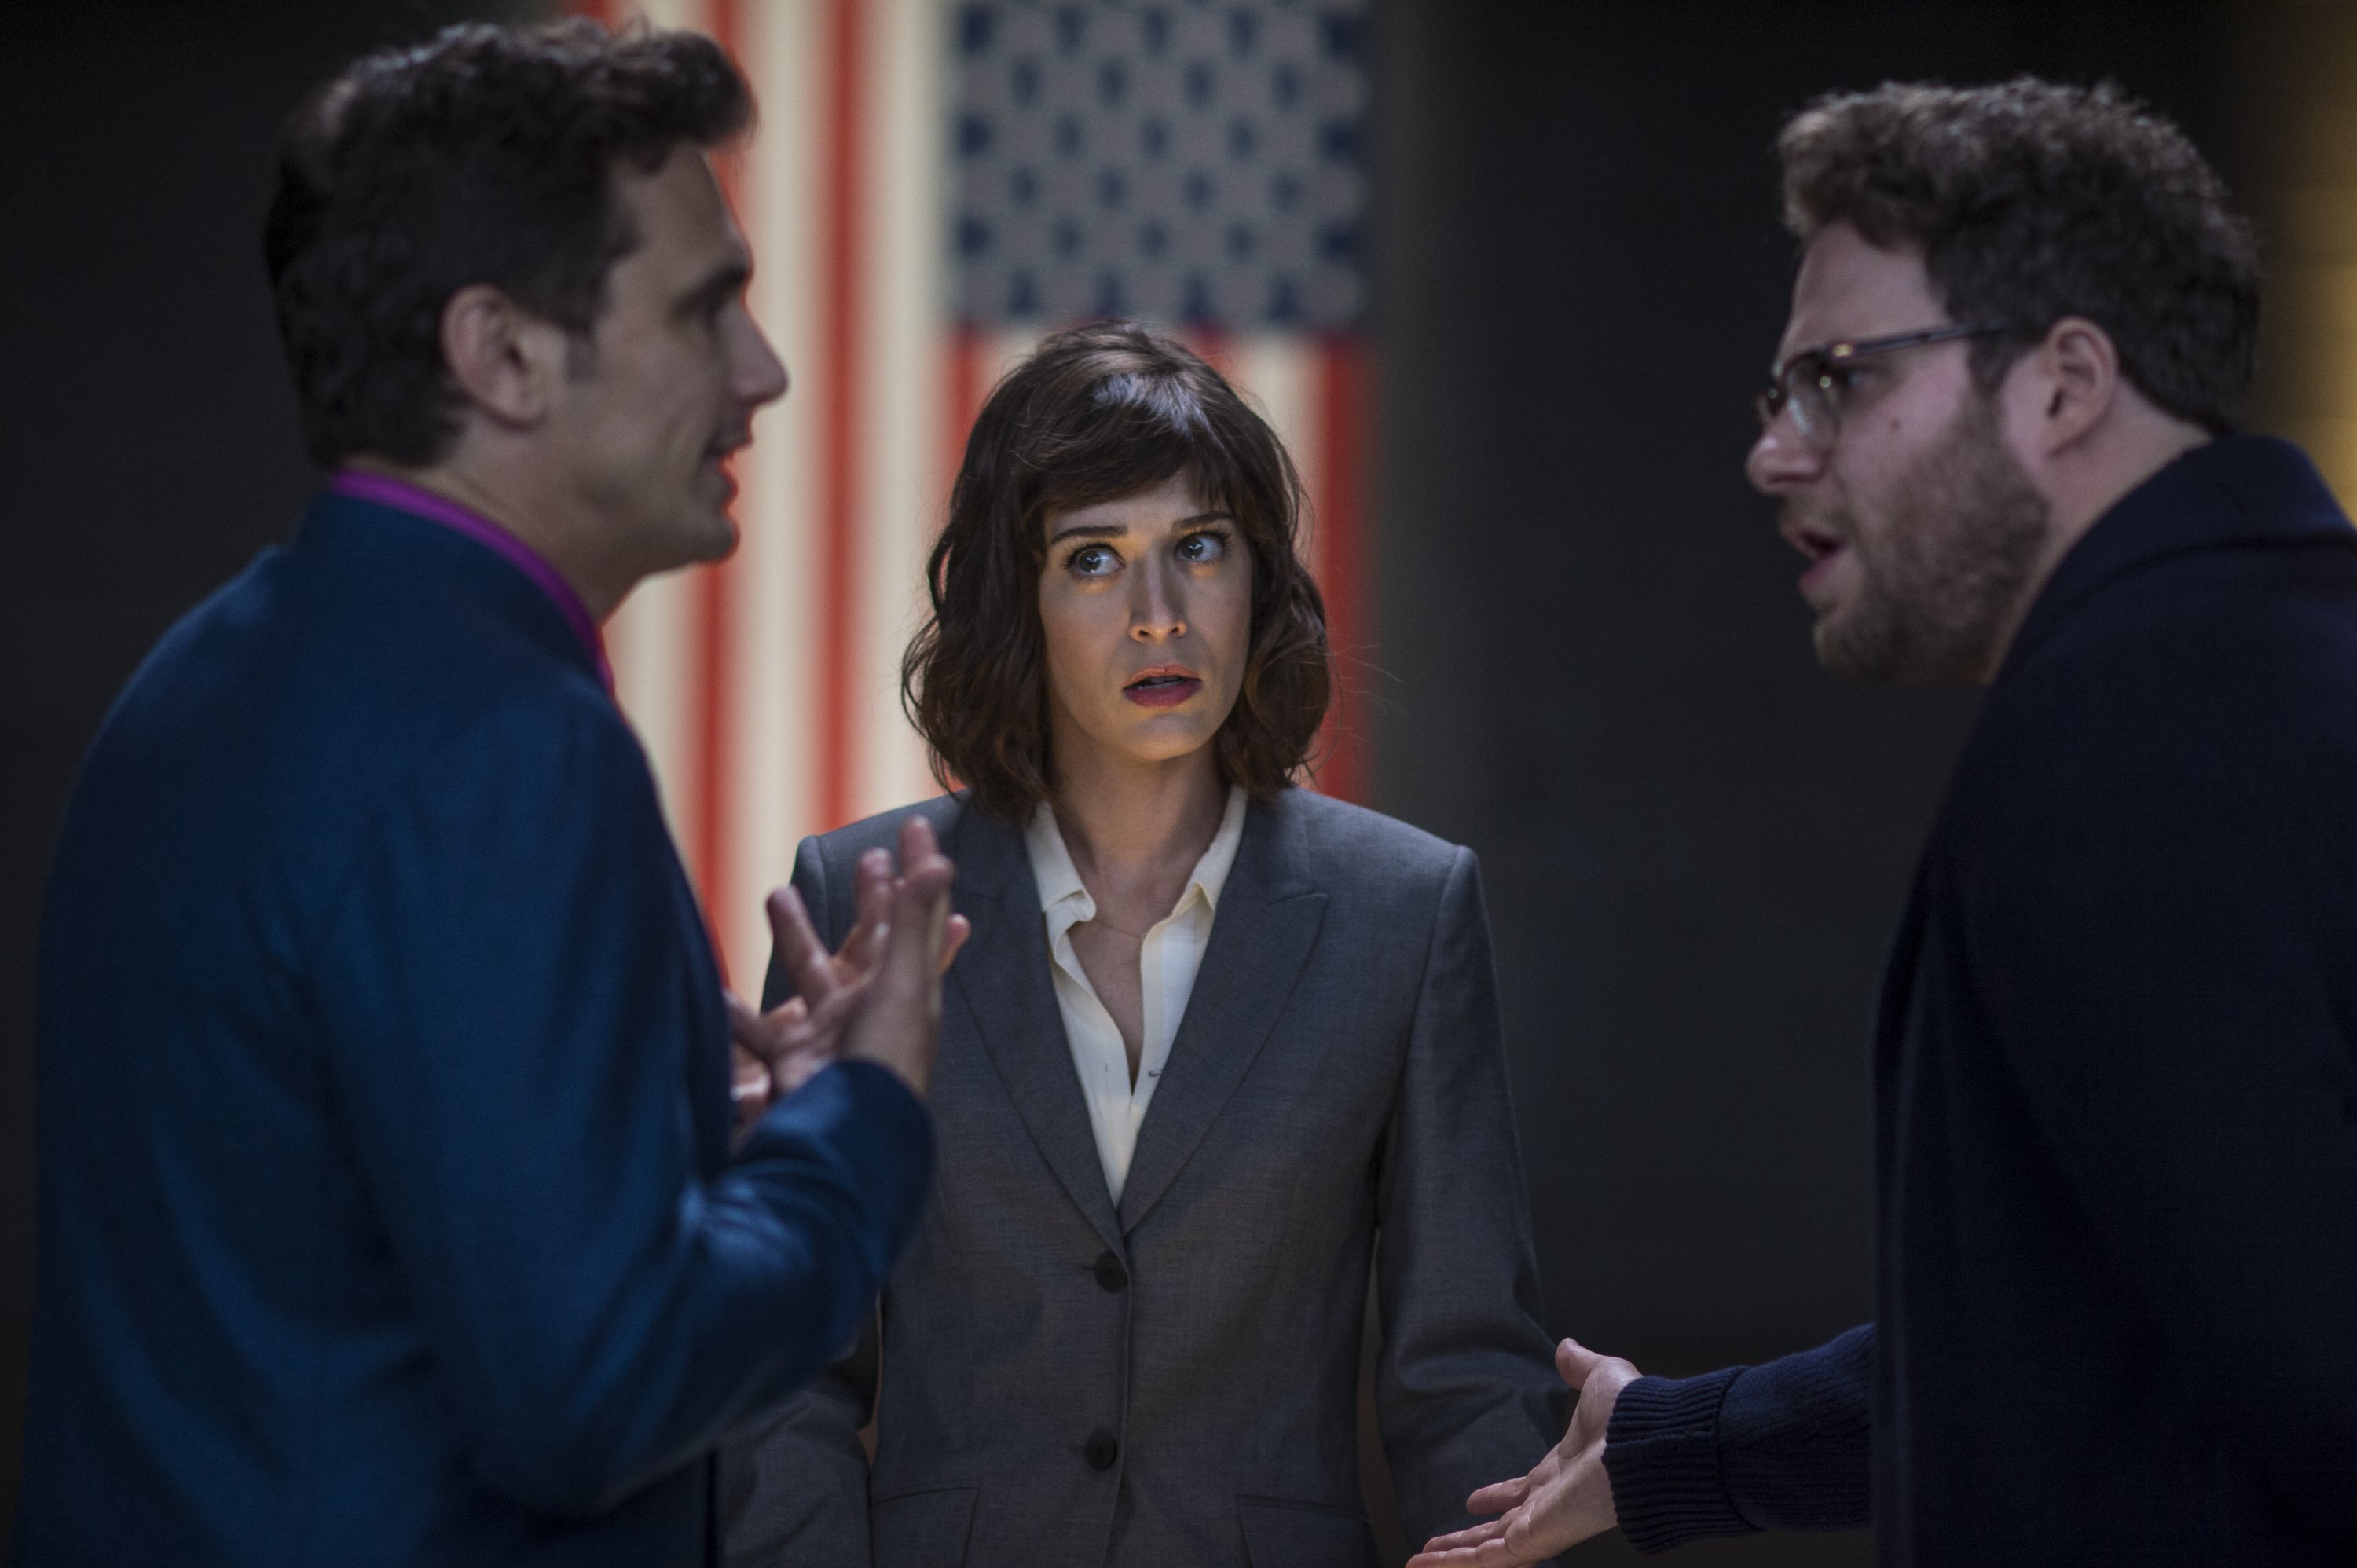 The Interview Release Date has Shifted to Christmas